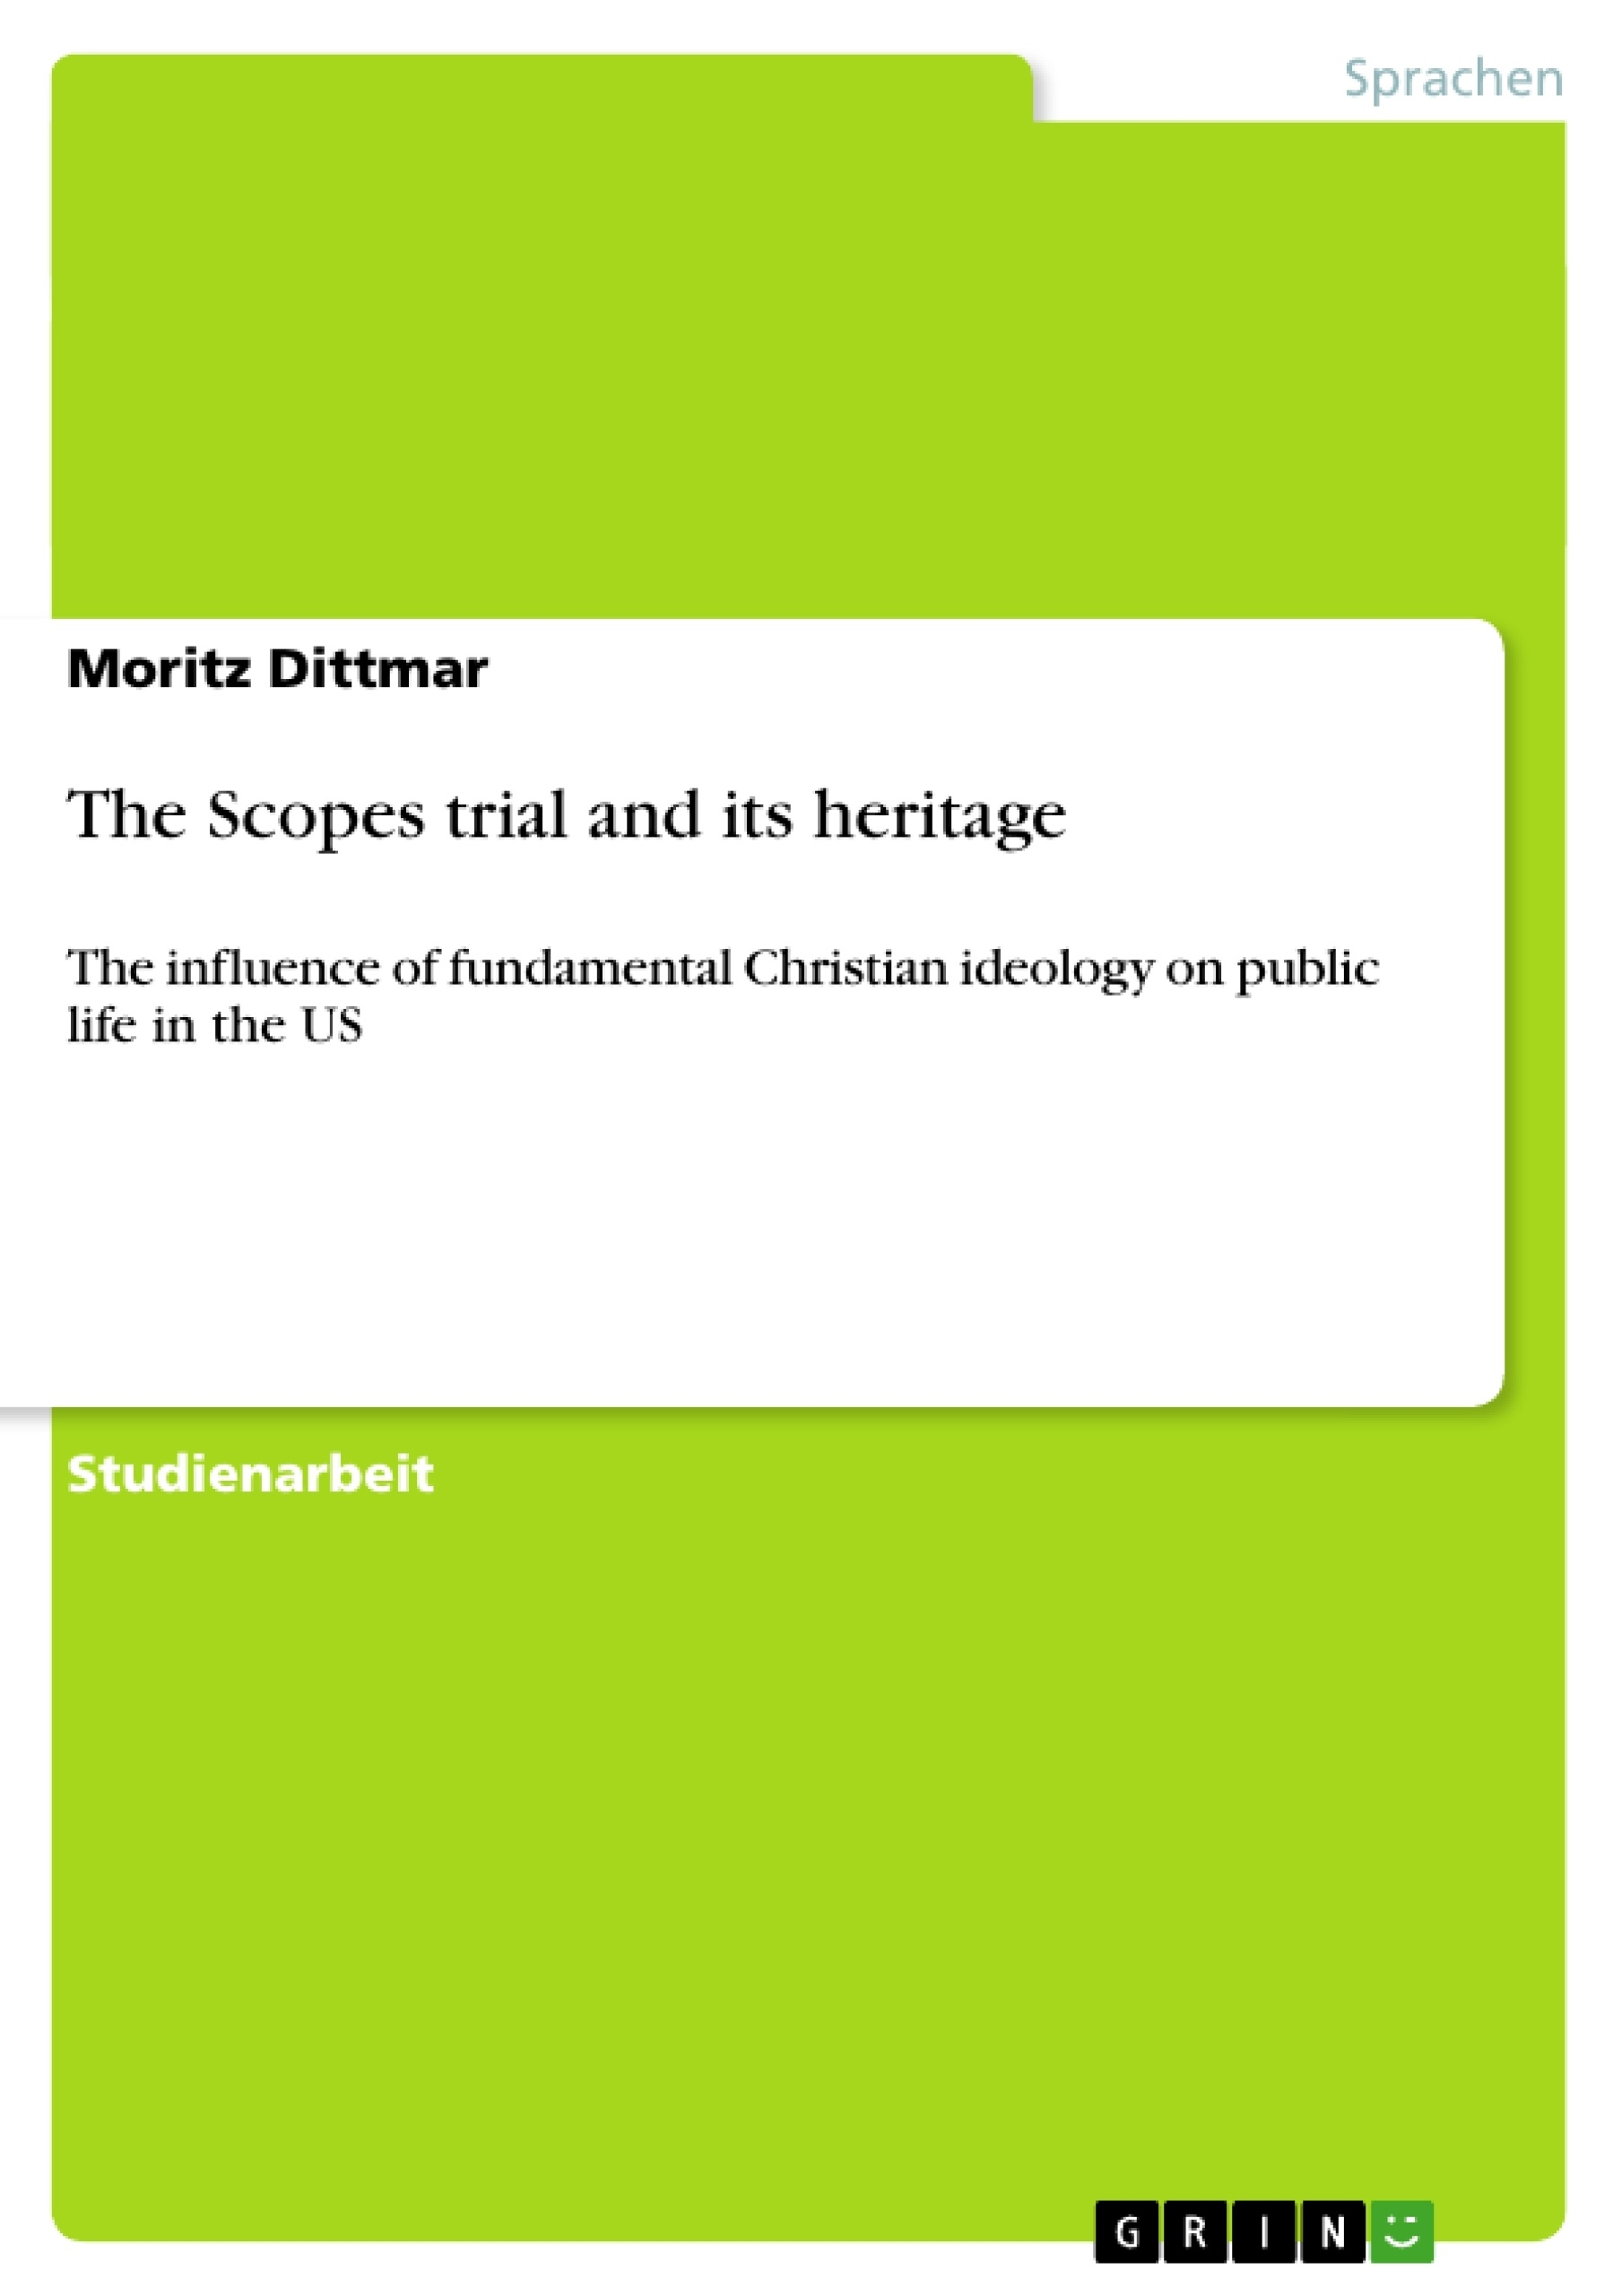 Titel: The Scopes trial and its heritage